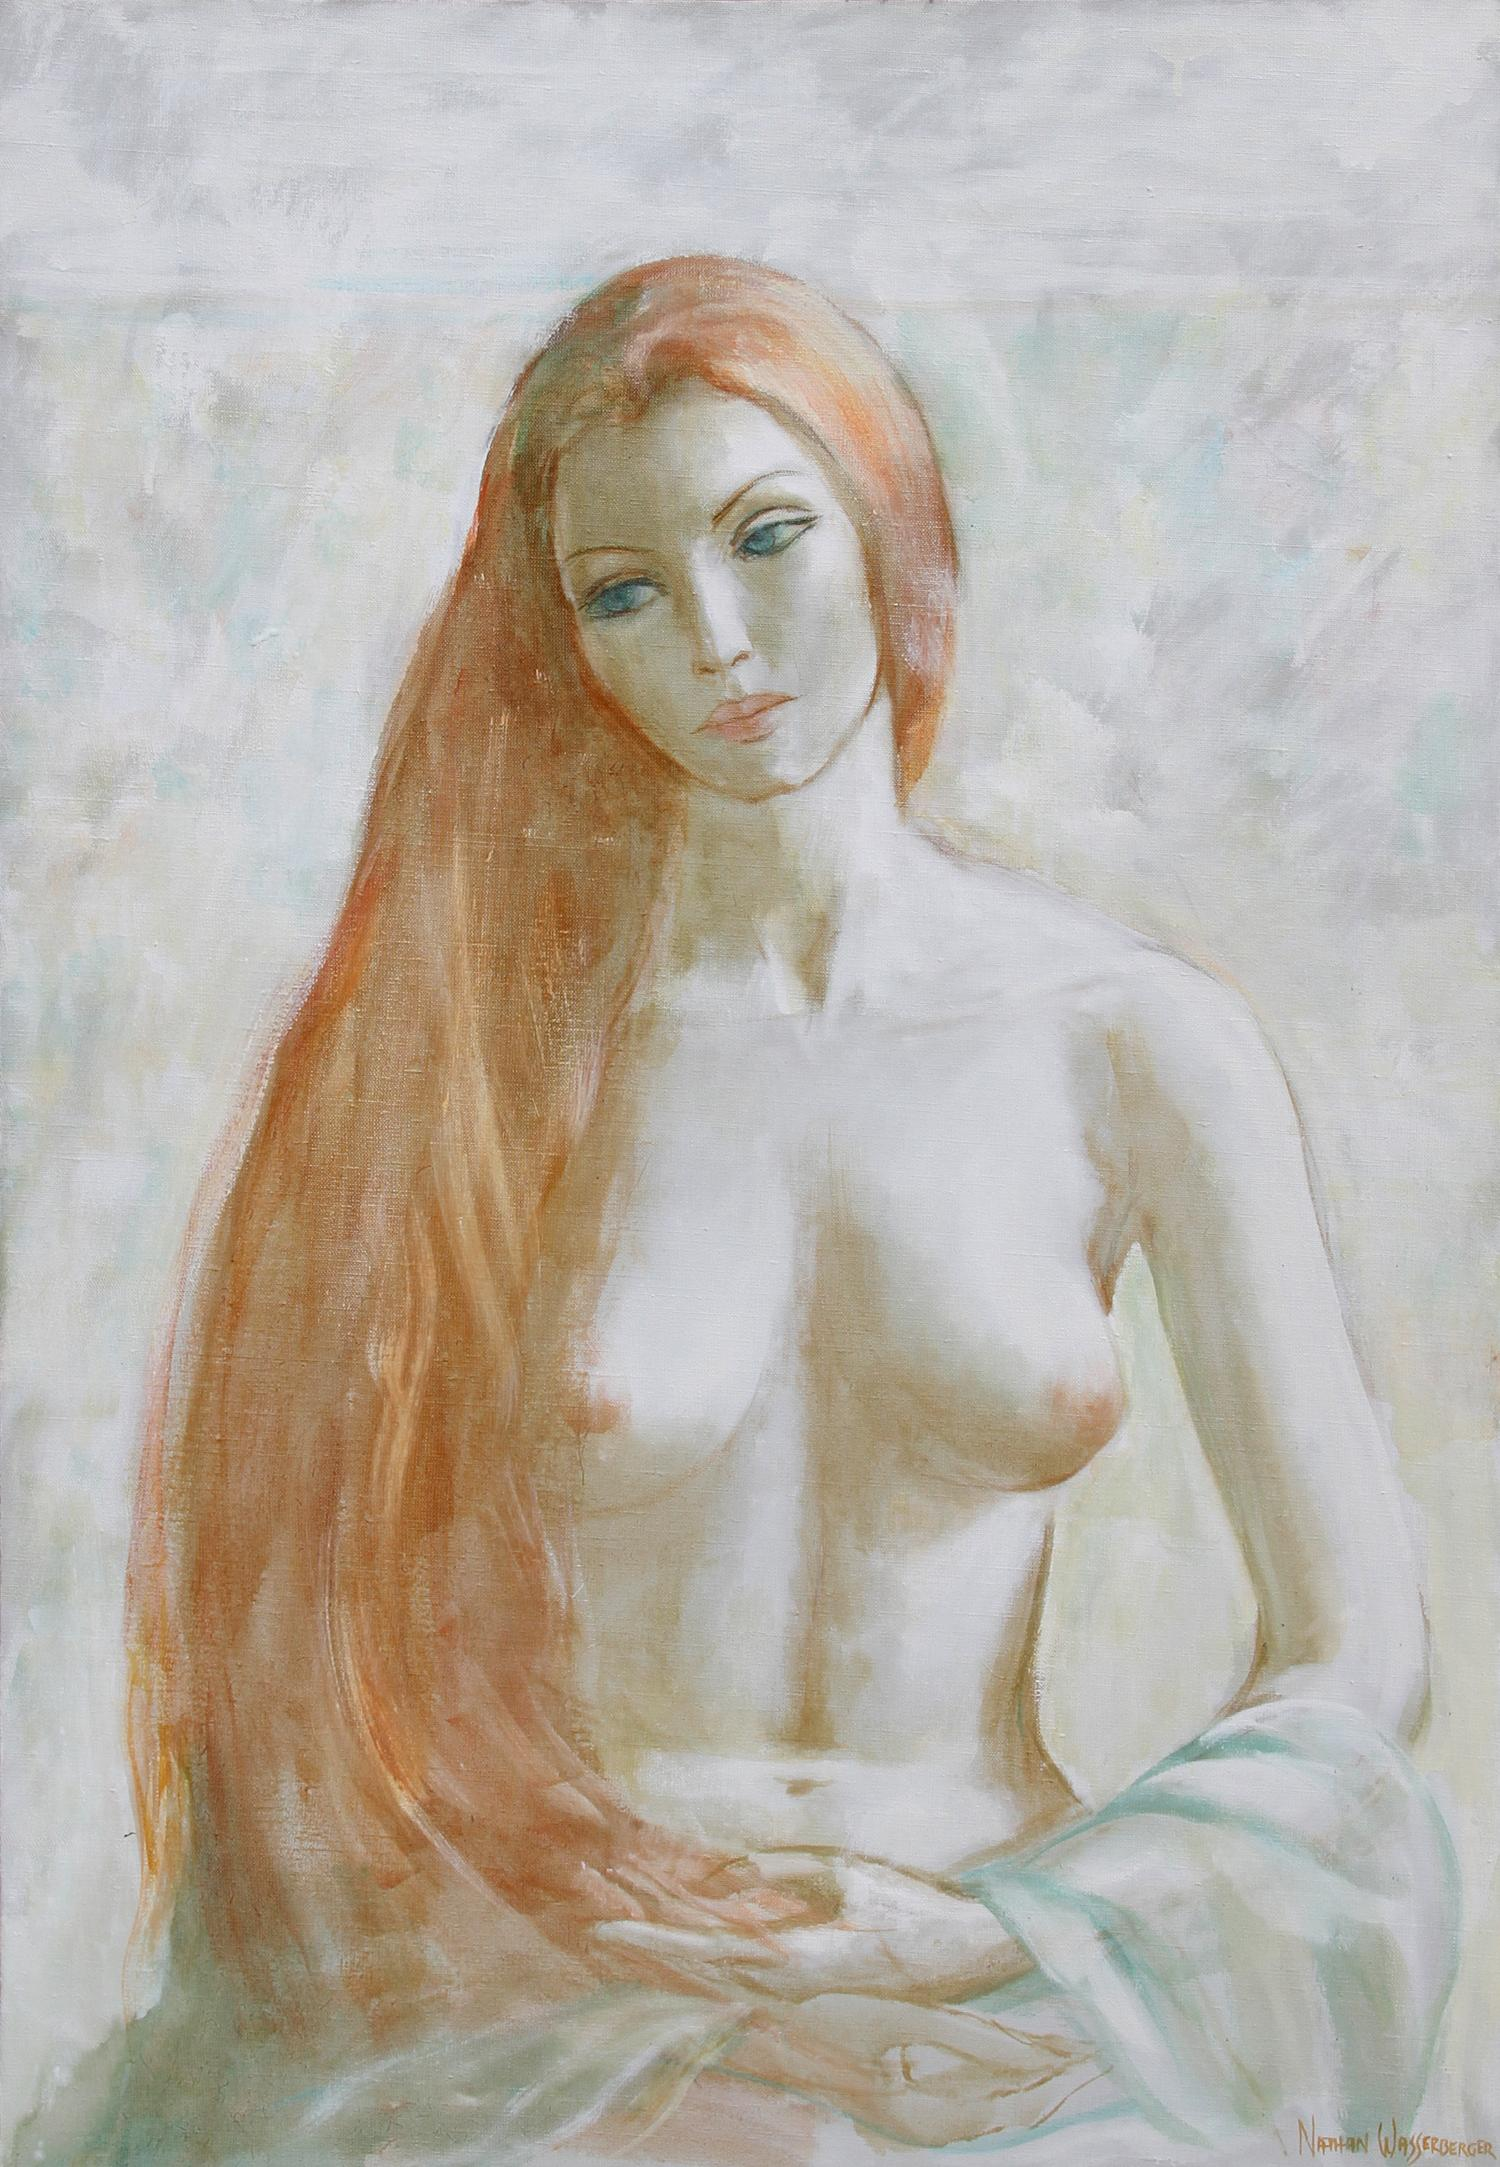 Redhead Nude, Oil Painting by Nathan Wasserberger